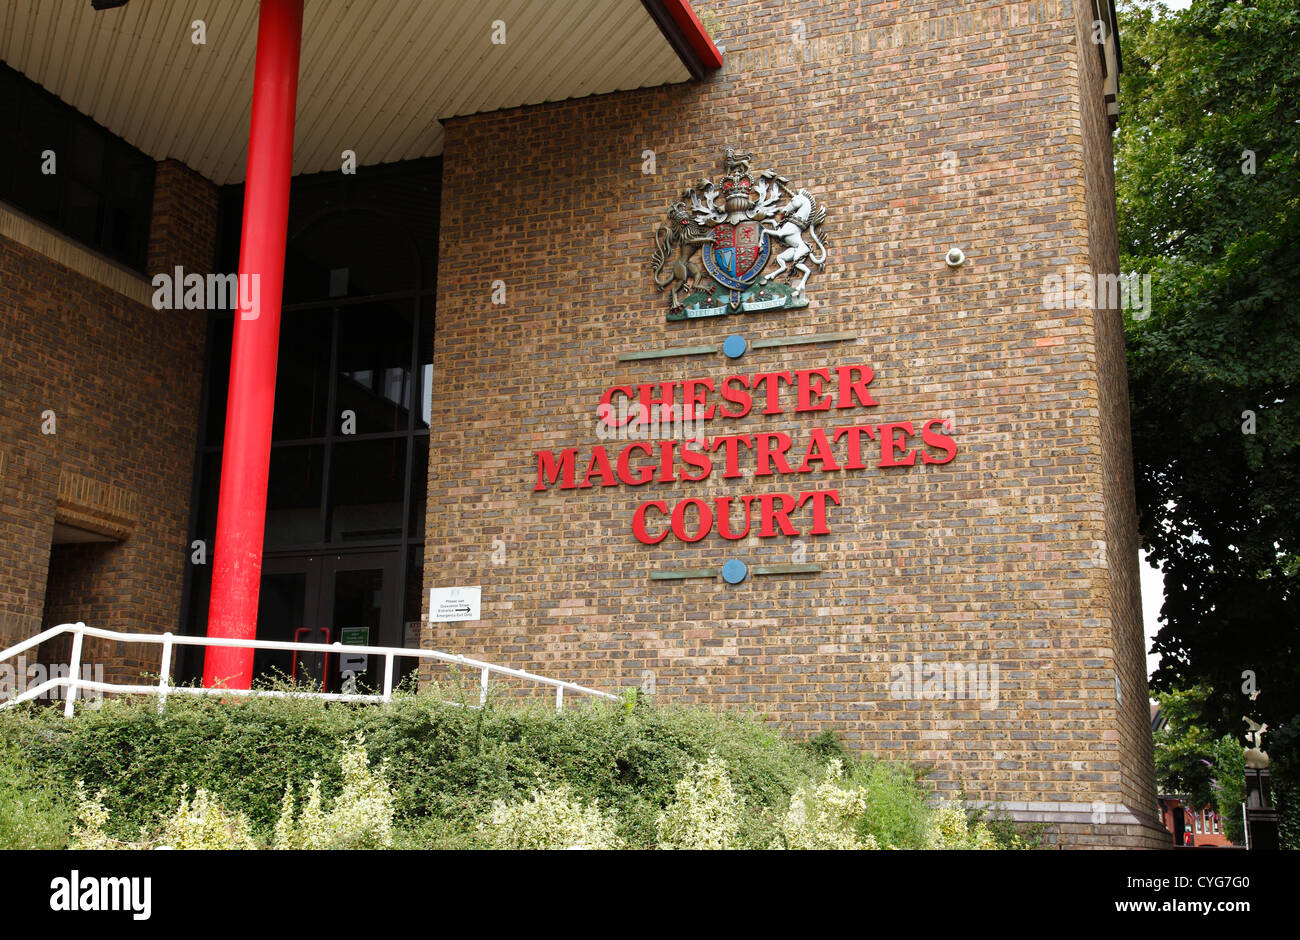 Chester magistrates court, Chester, England, U.K. - Stock Image